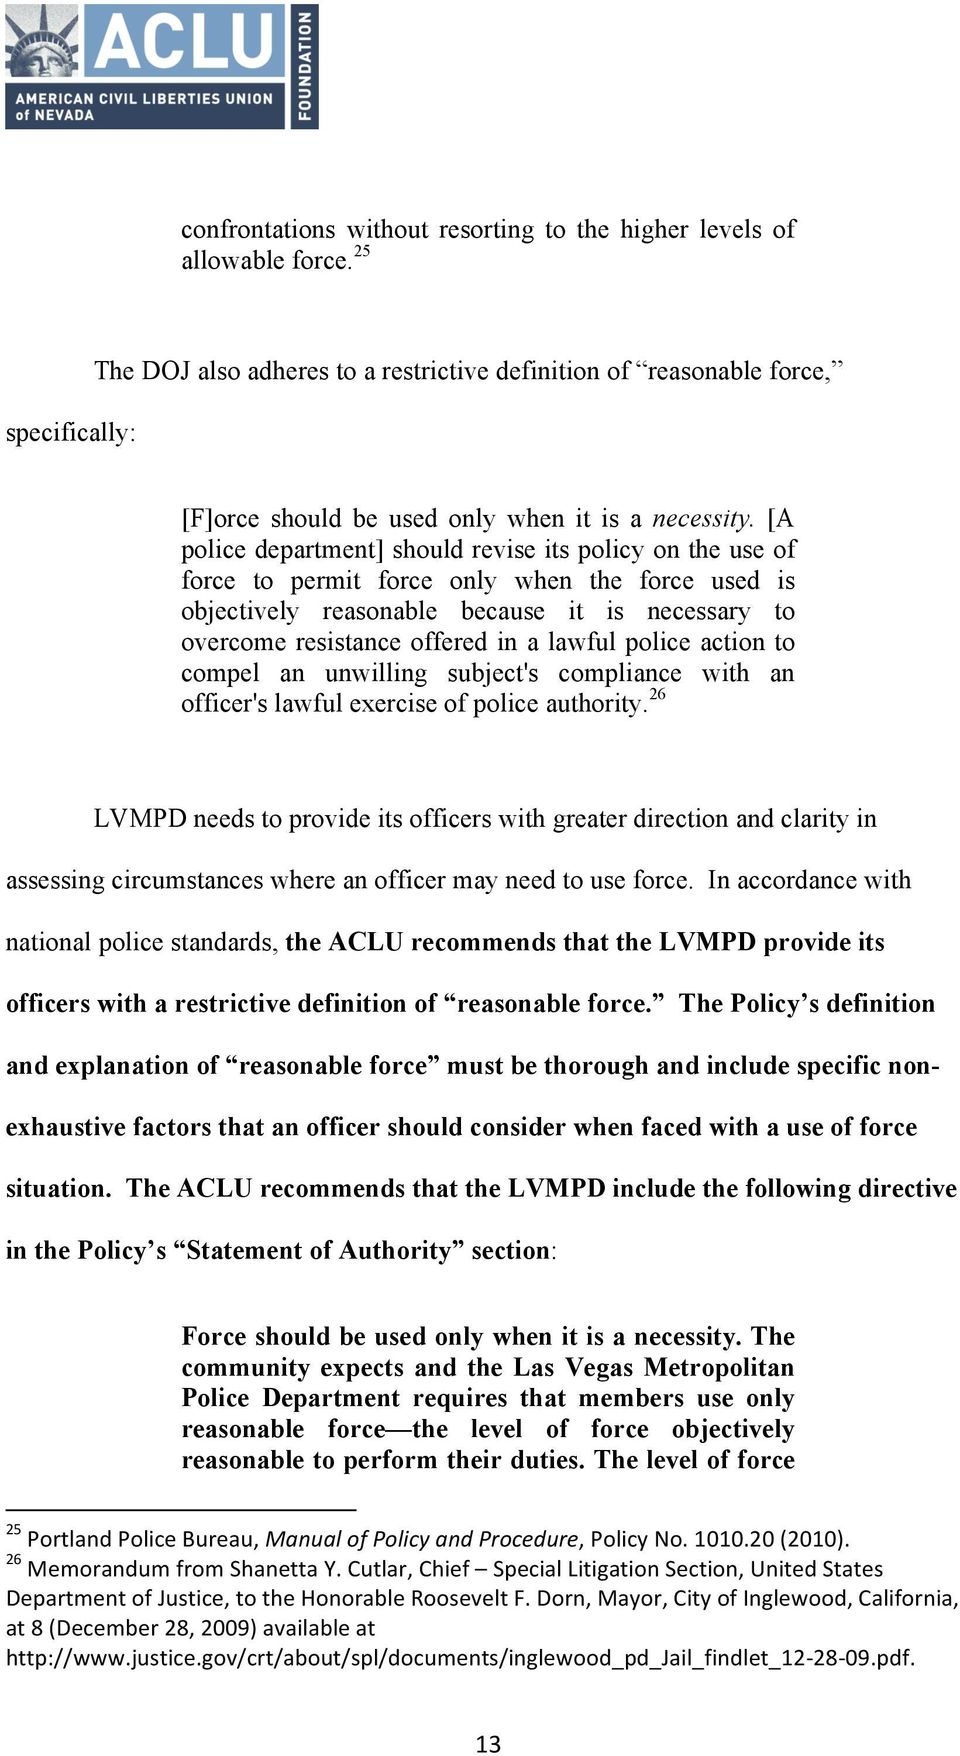 [A police department] should revise its policy on the use of force to permit force only when the force used is objectively reasonable because it is necessary to overcome resistance offered in a